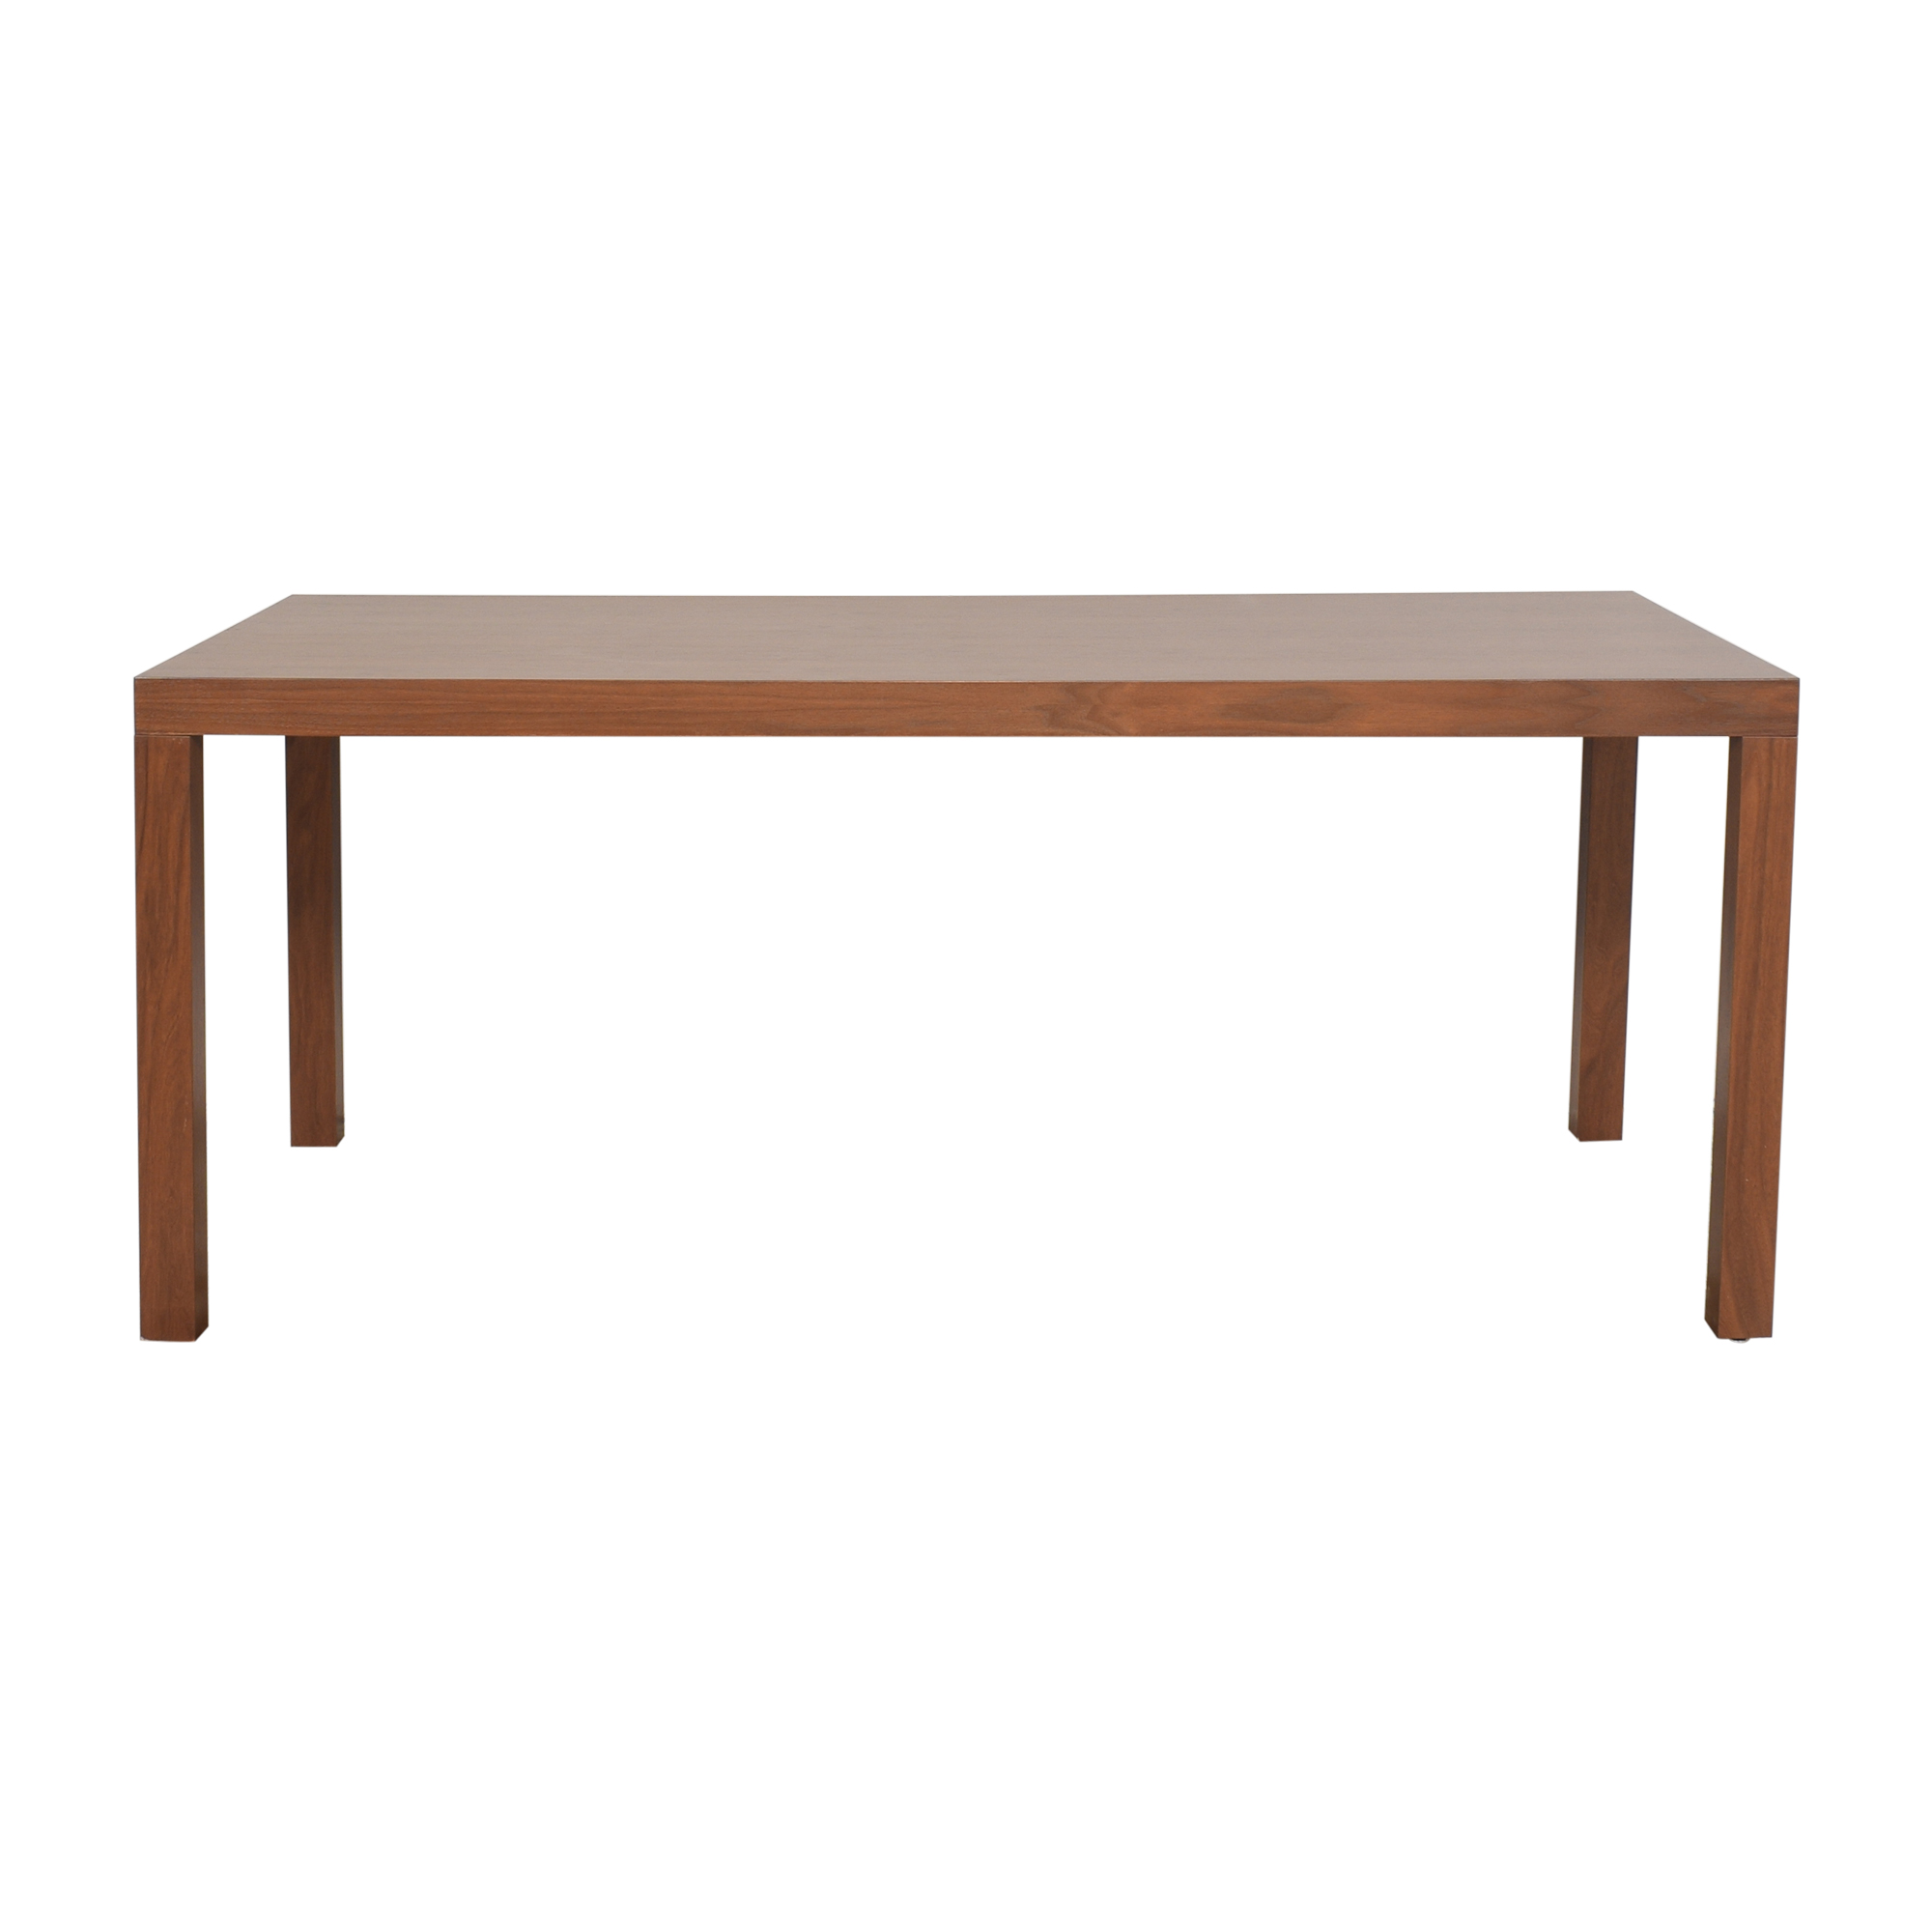 Urbangreen Furniture Urbangreen Furniture Parsons Dining Table discount